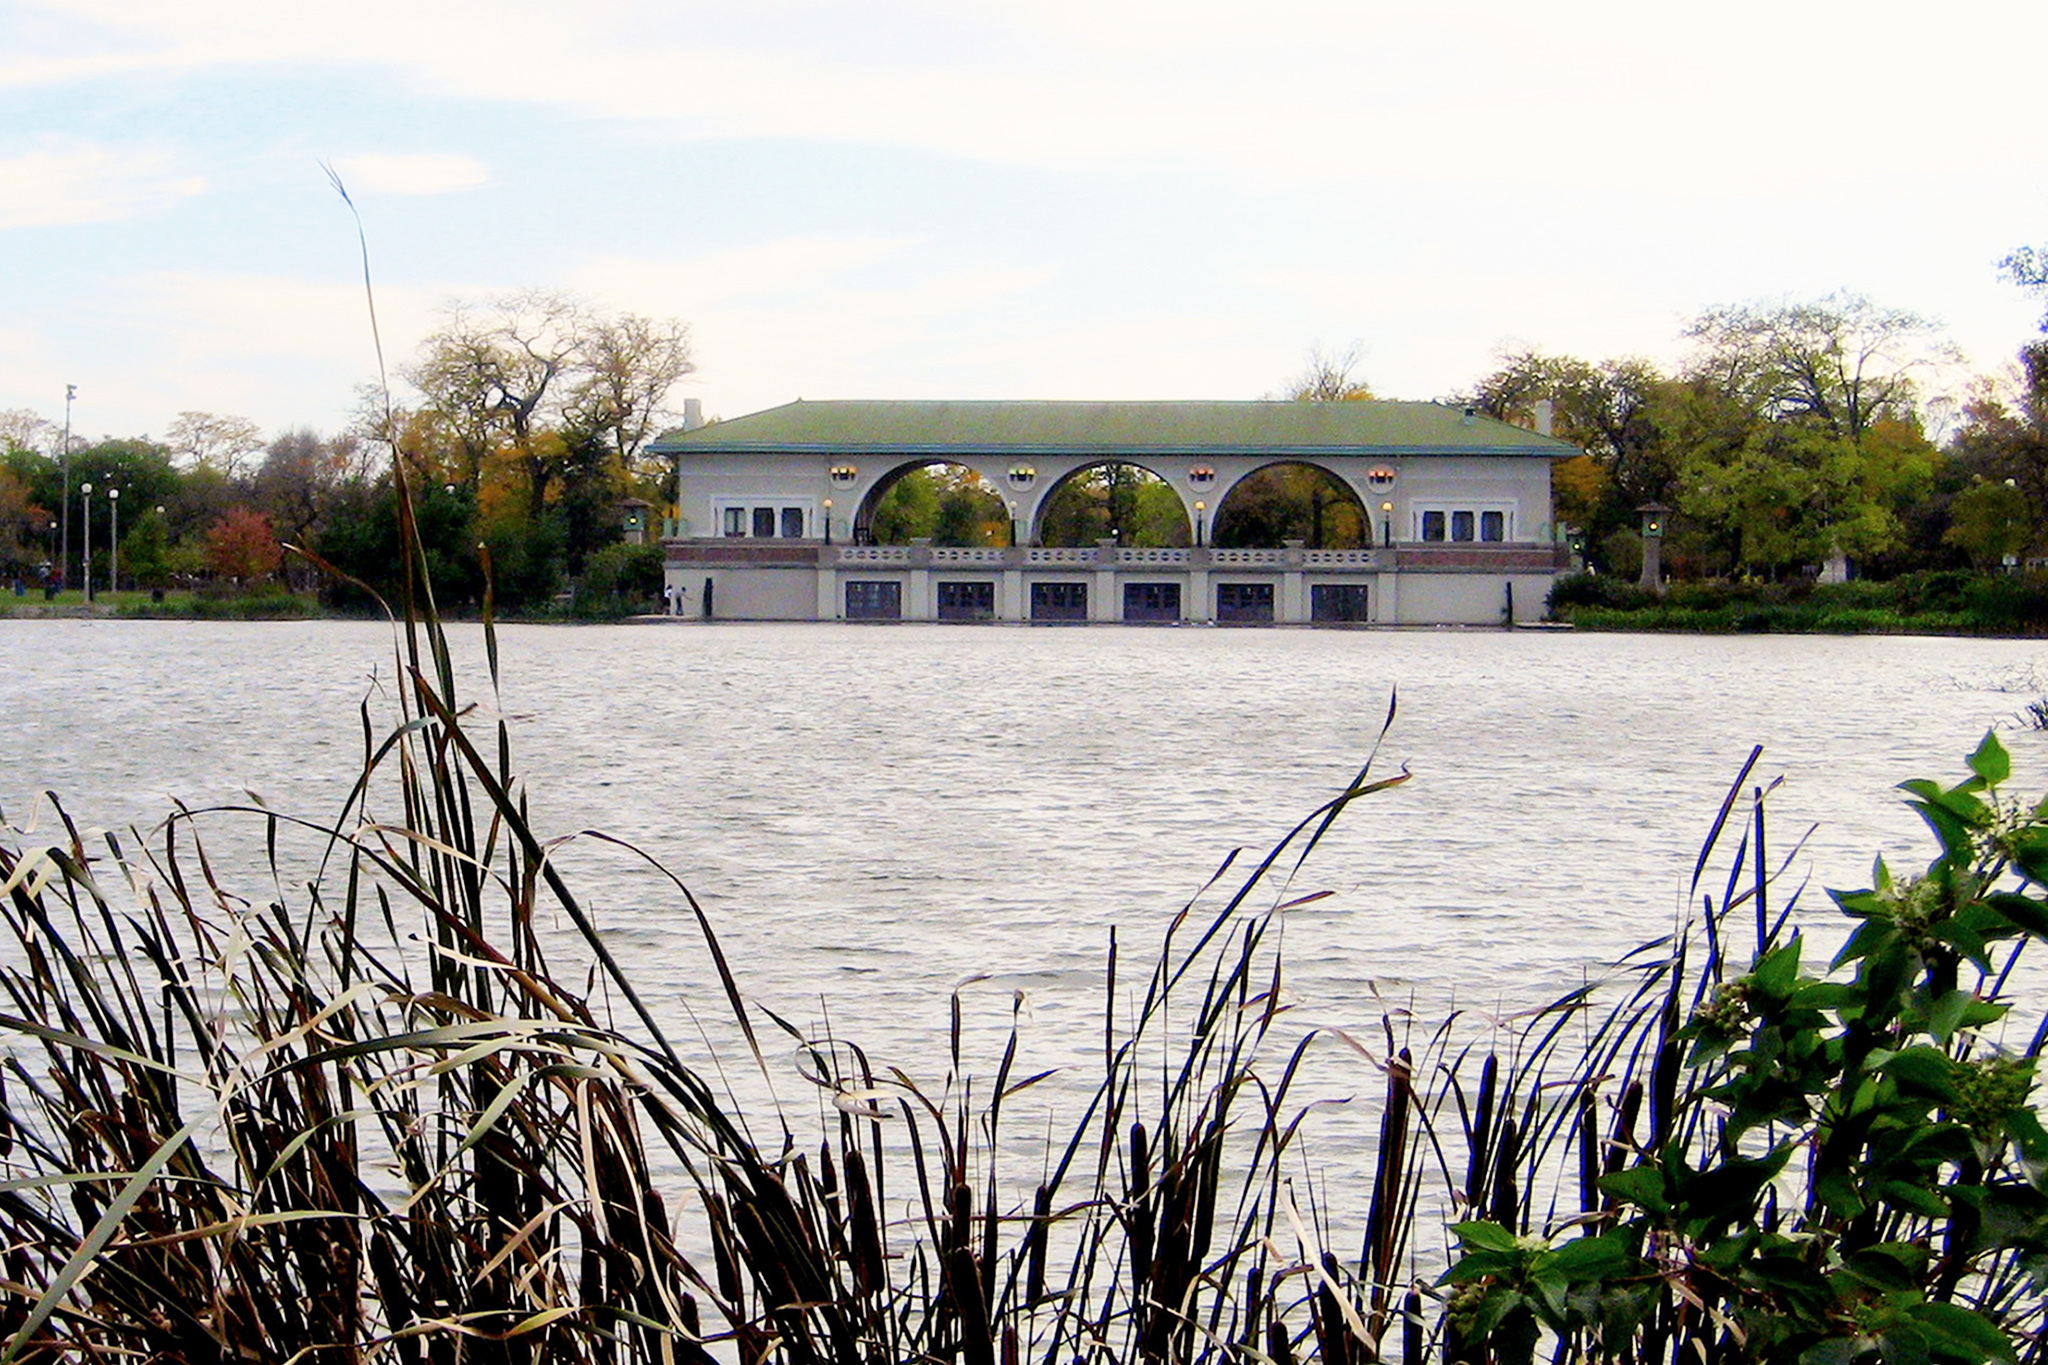 Humboldt Park Boathouse, 1301 N Sacramento Ave